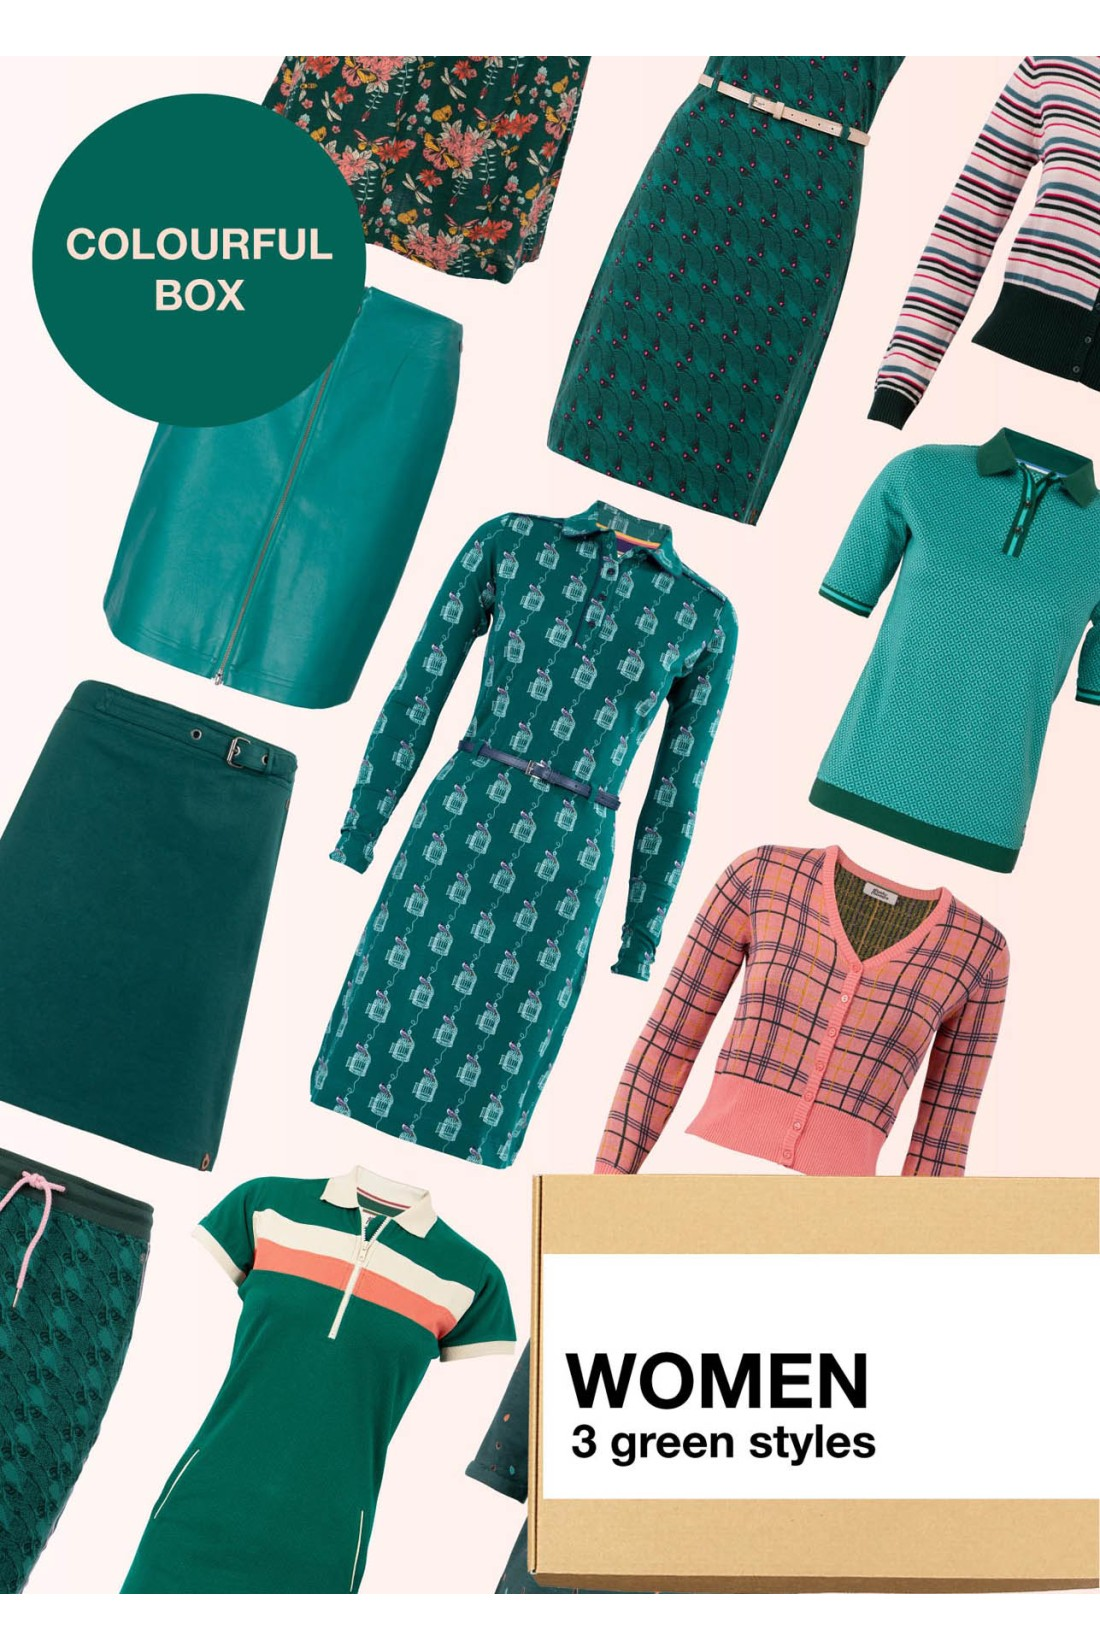 Surprise Box Women - Green Box 3 Styles With Green In It